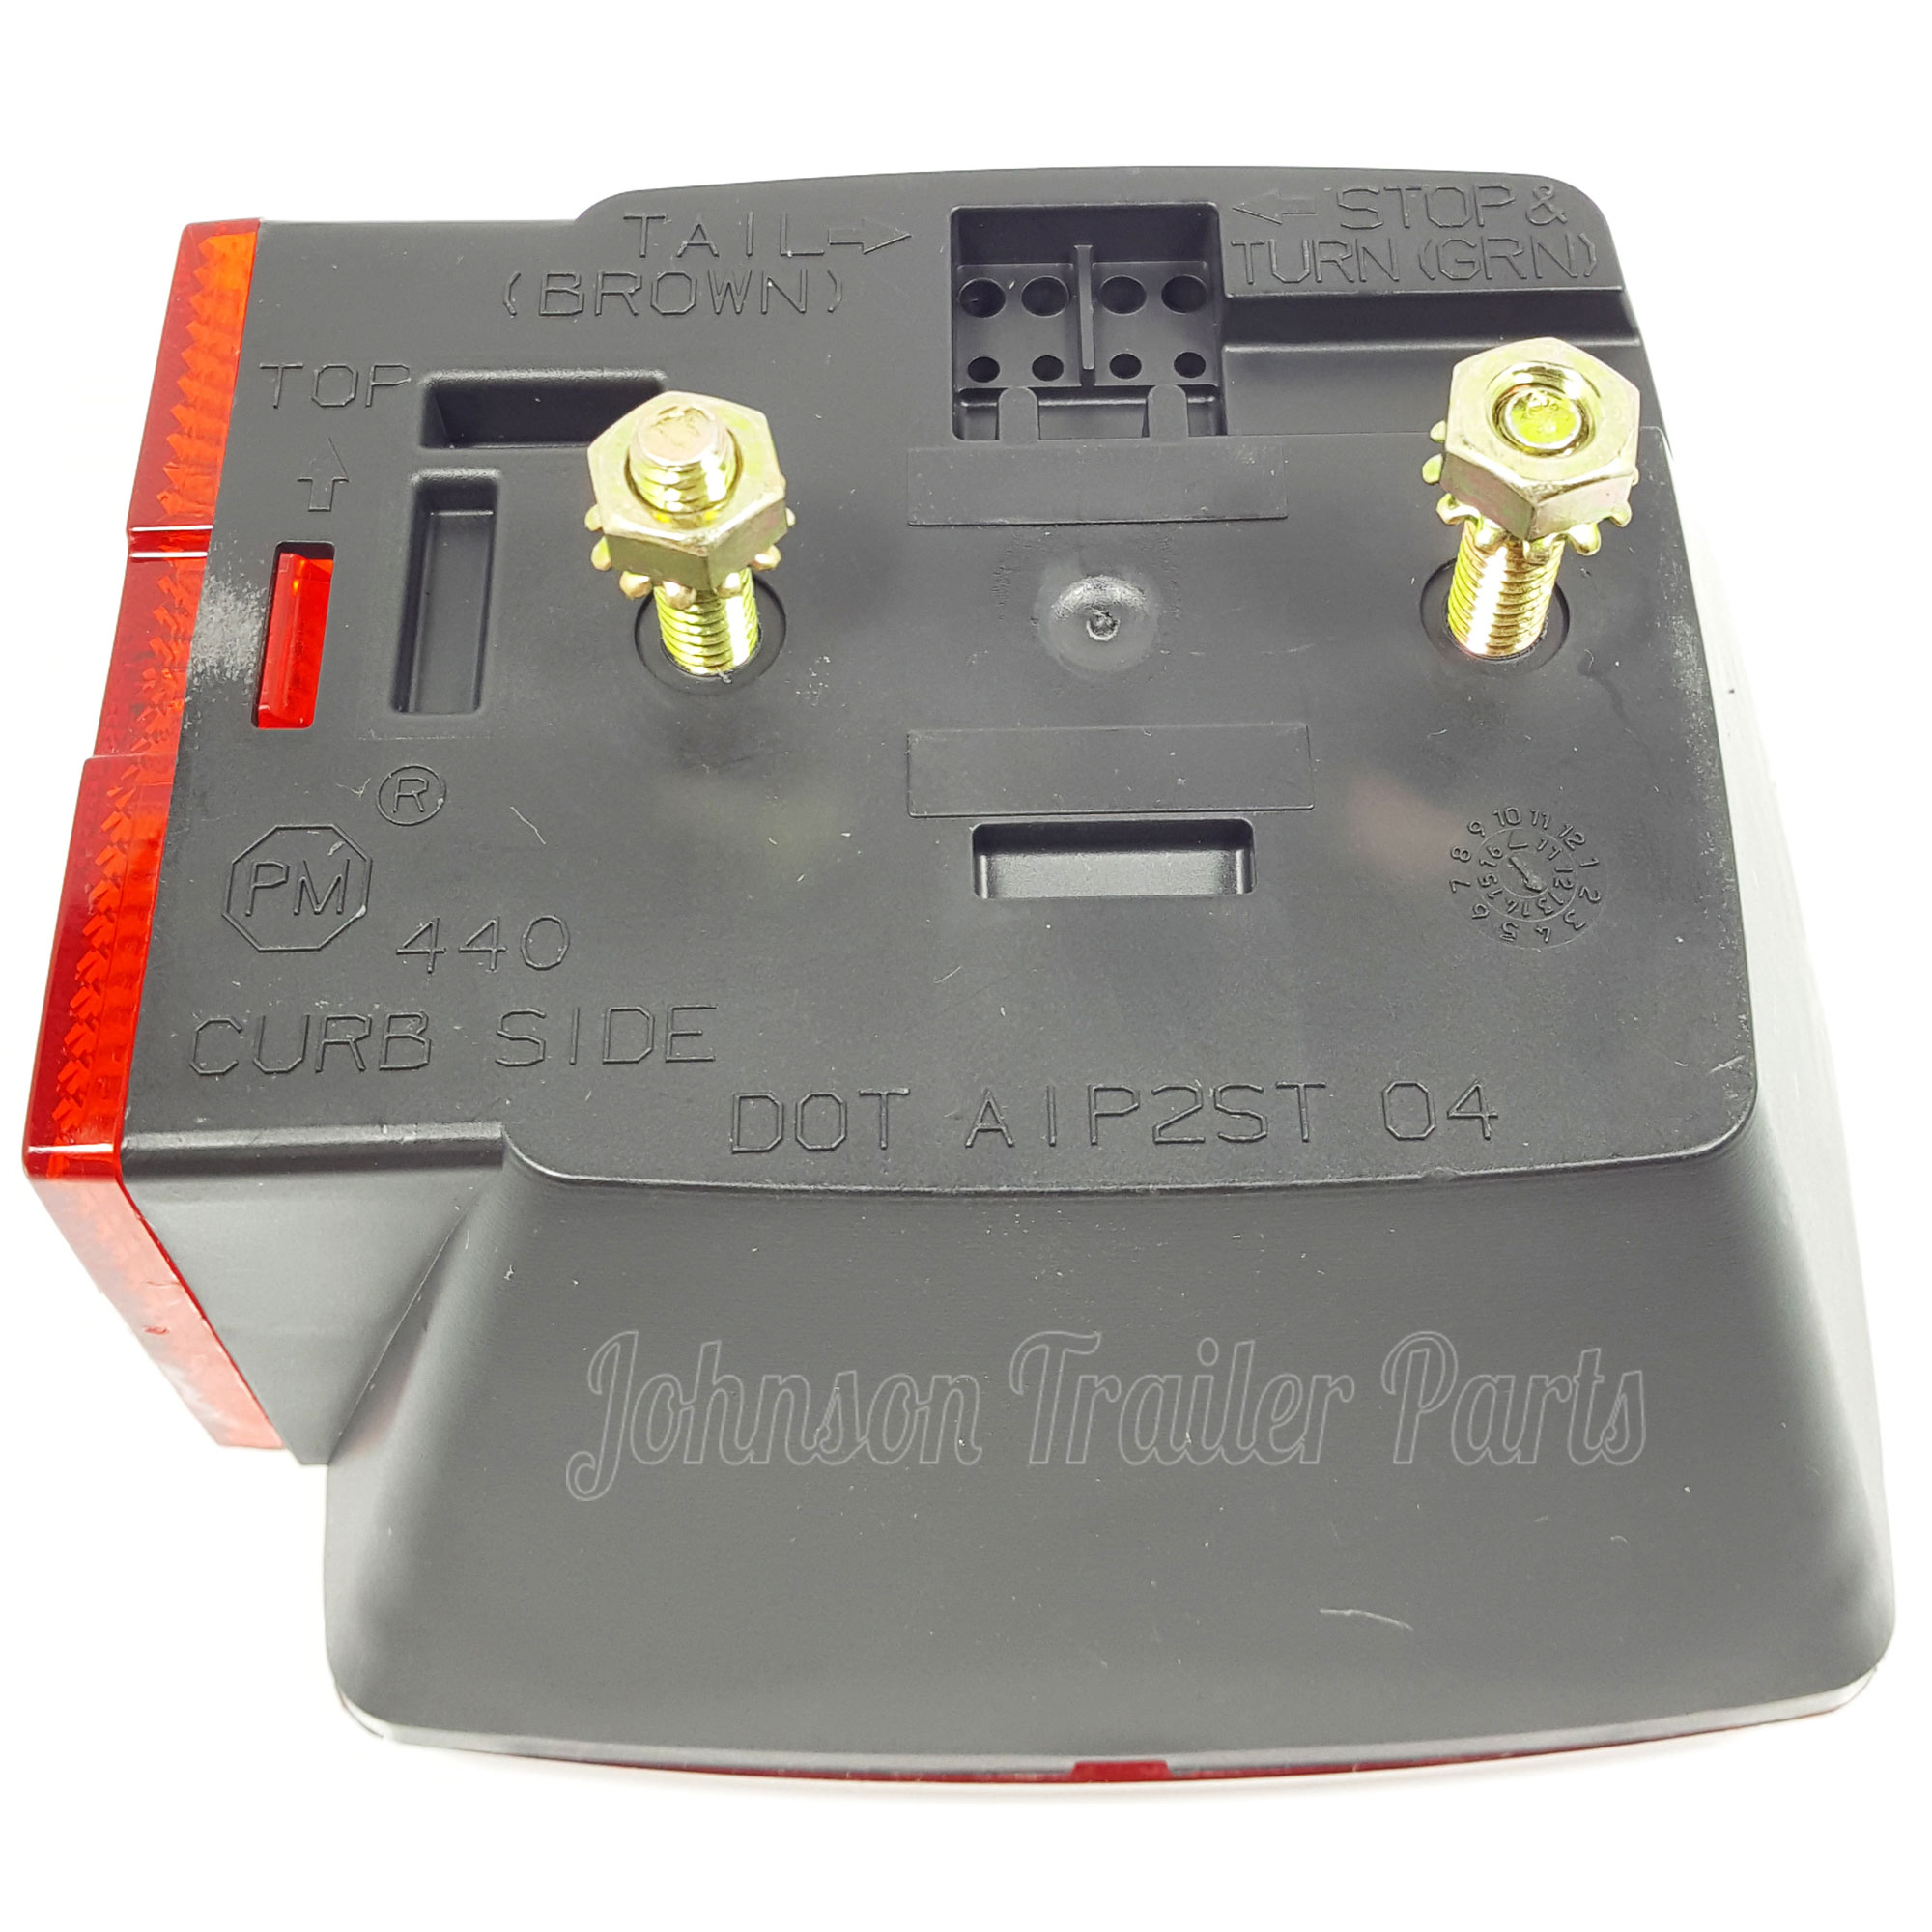 peterson trailer lights wiring diagram 2 gang one way switch pair of tail pm 440 440l stop turn